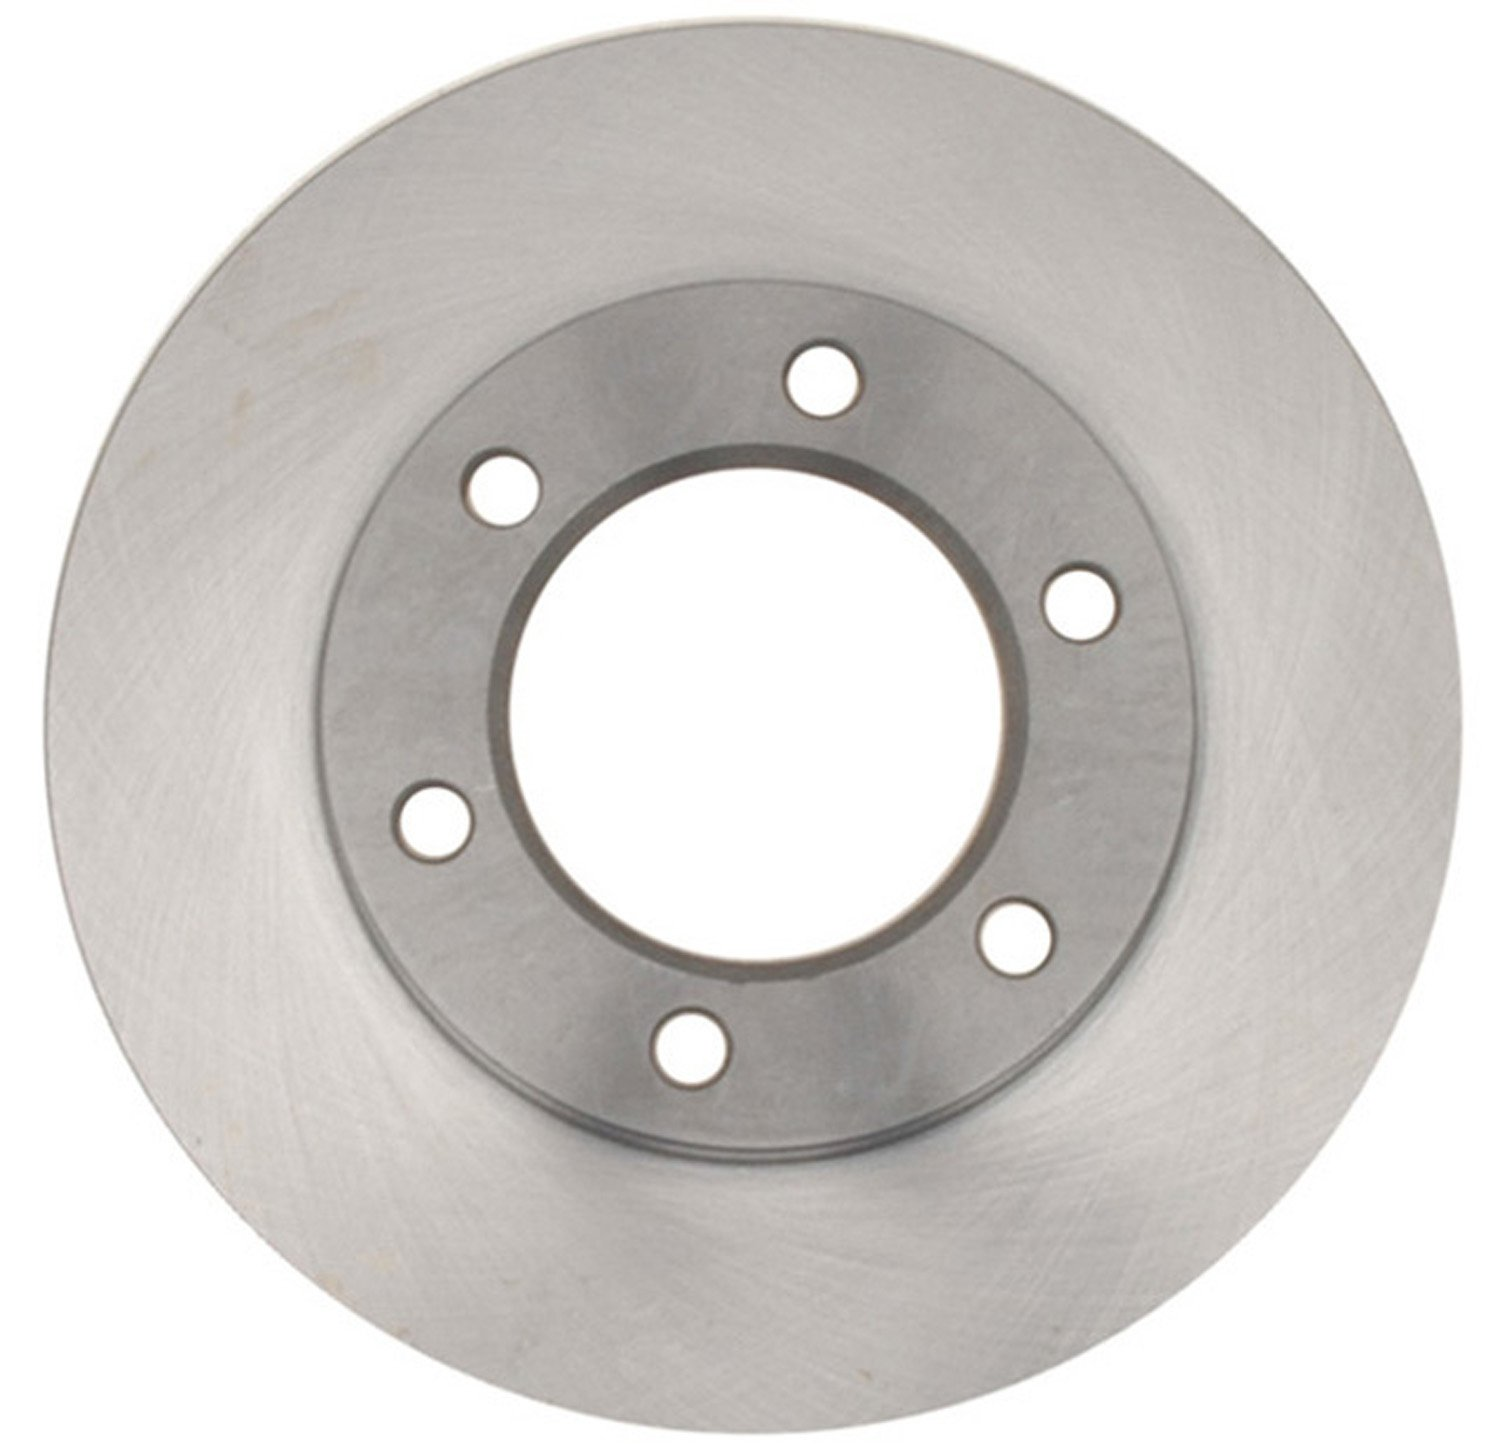 ACDelco 18A35A Advantage Non-Coated Front Disc Brake Rotor